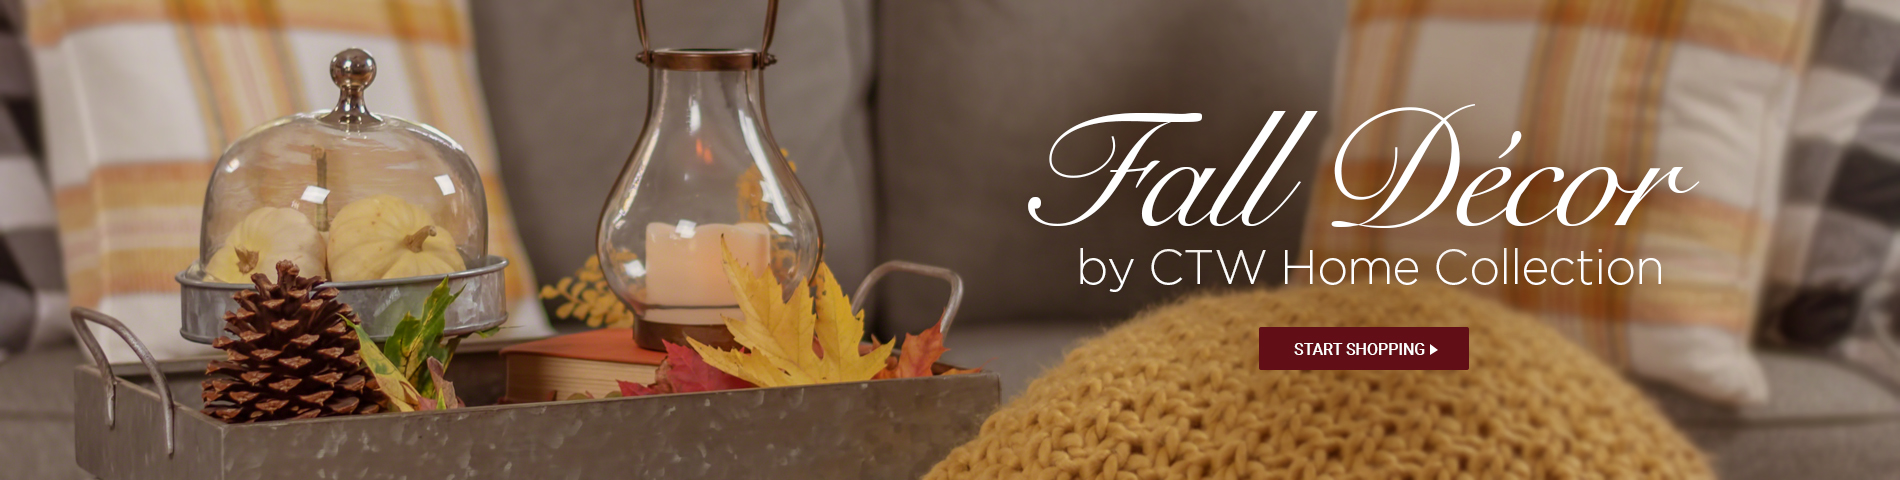 Shop Fall Decor by CTW Home Collection